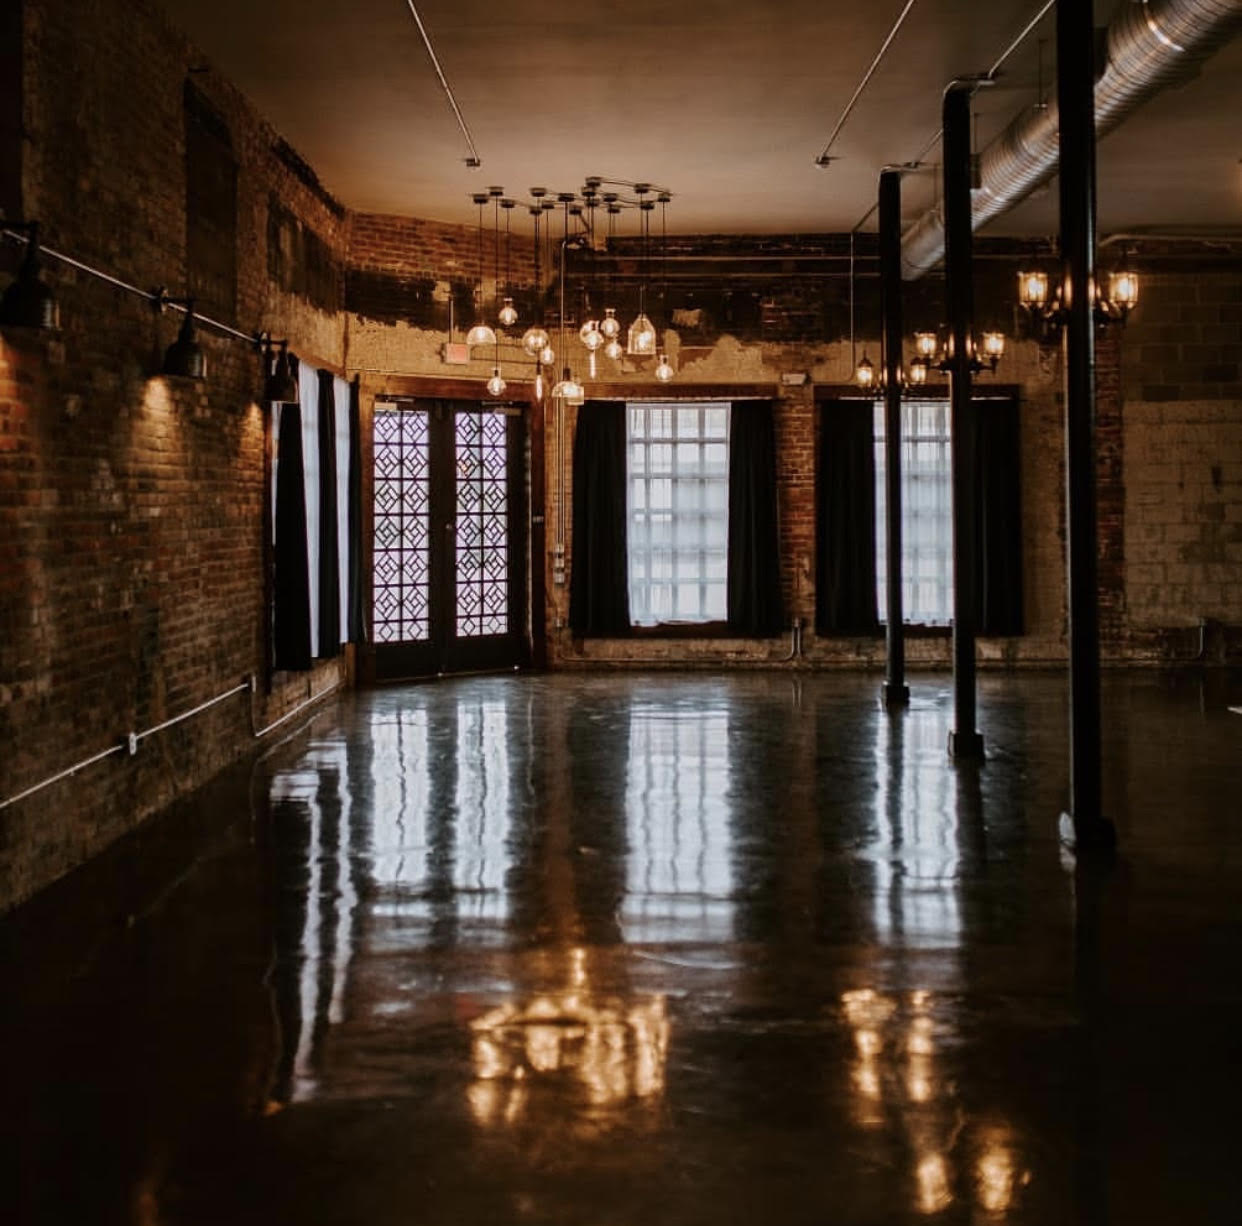 Large room with glossy concrete floors and lighting